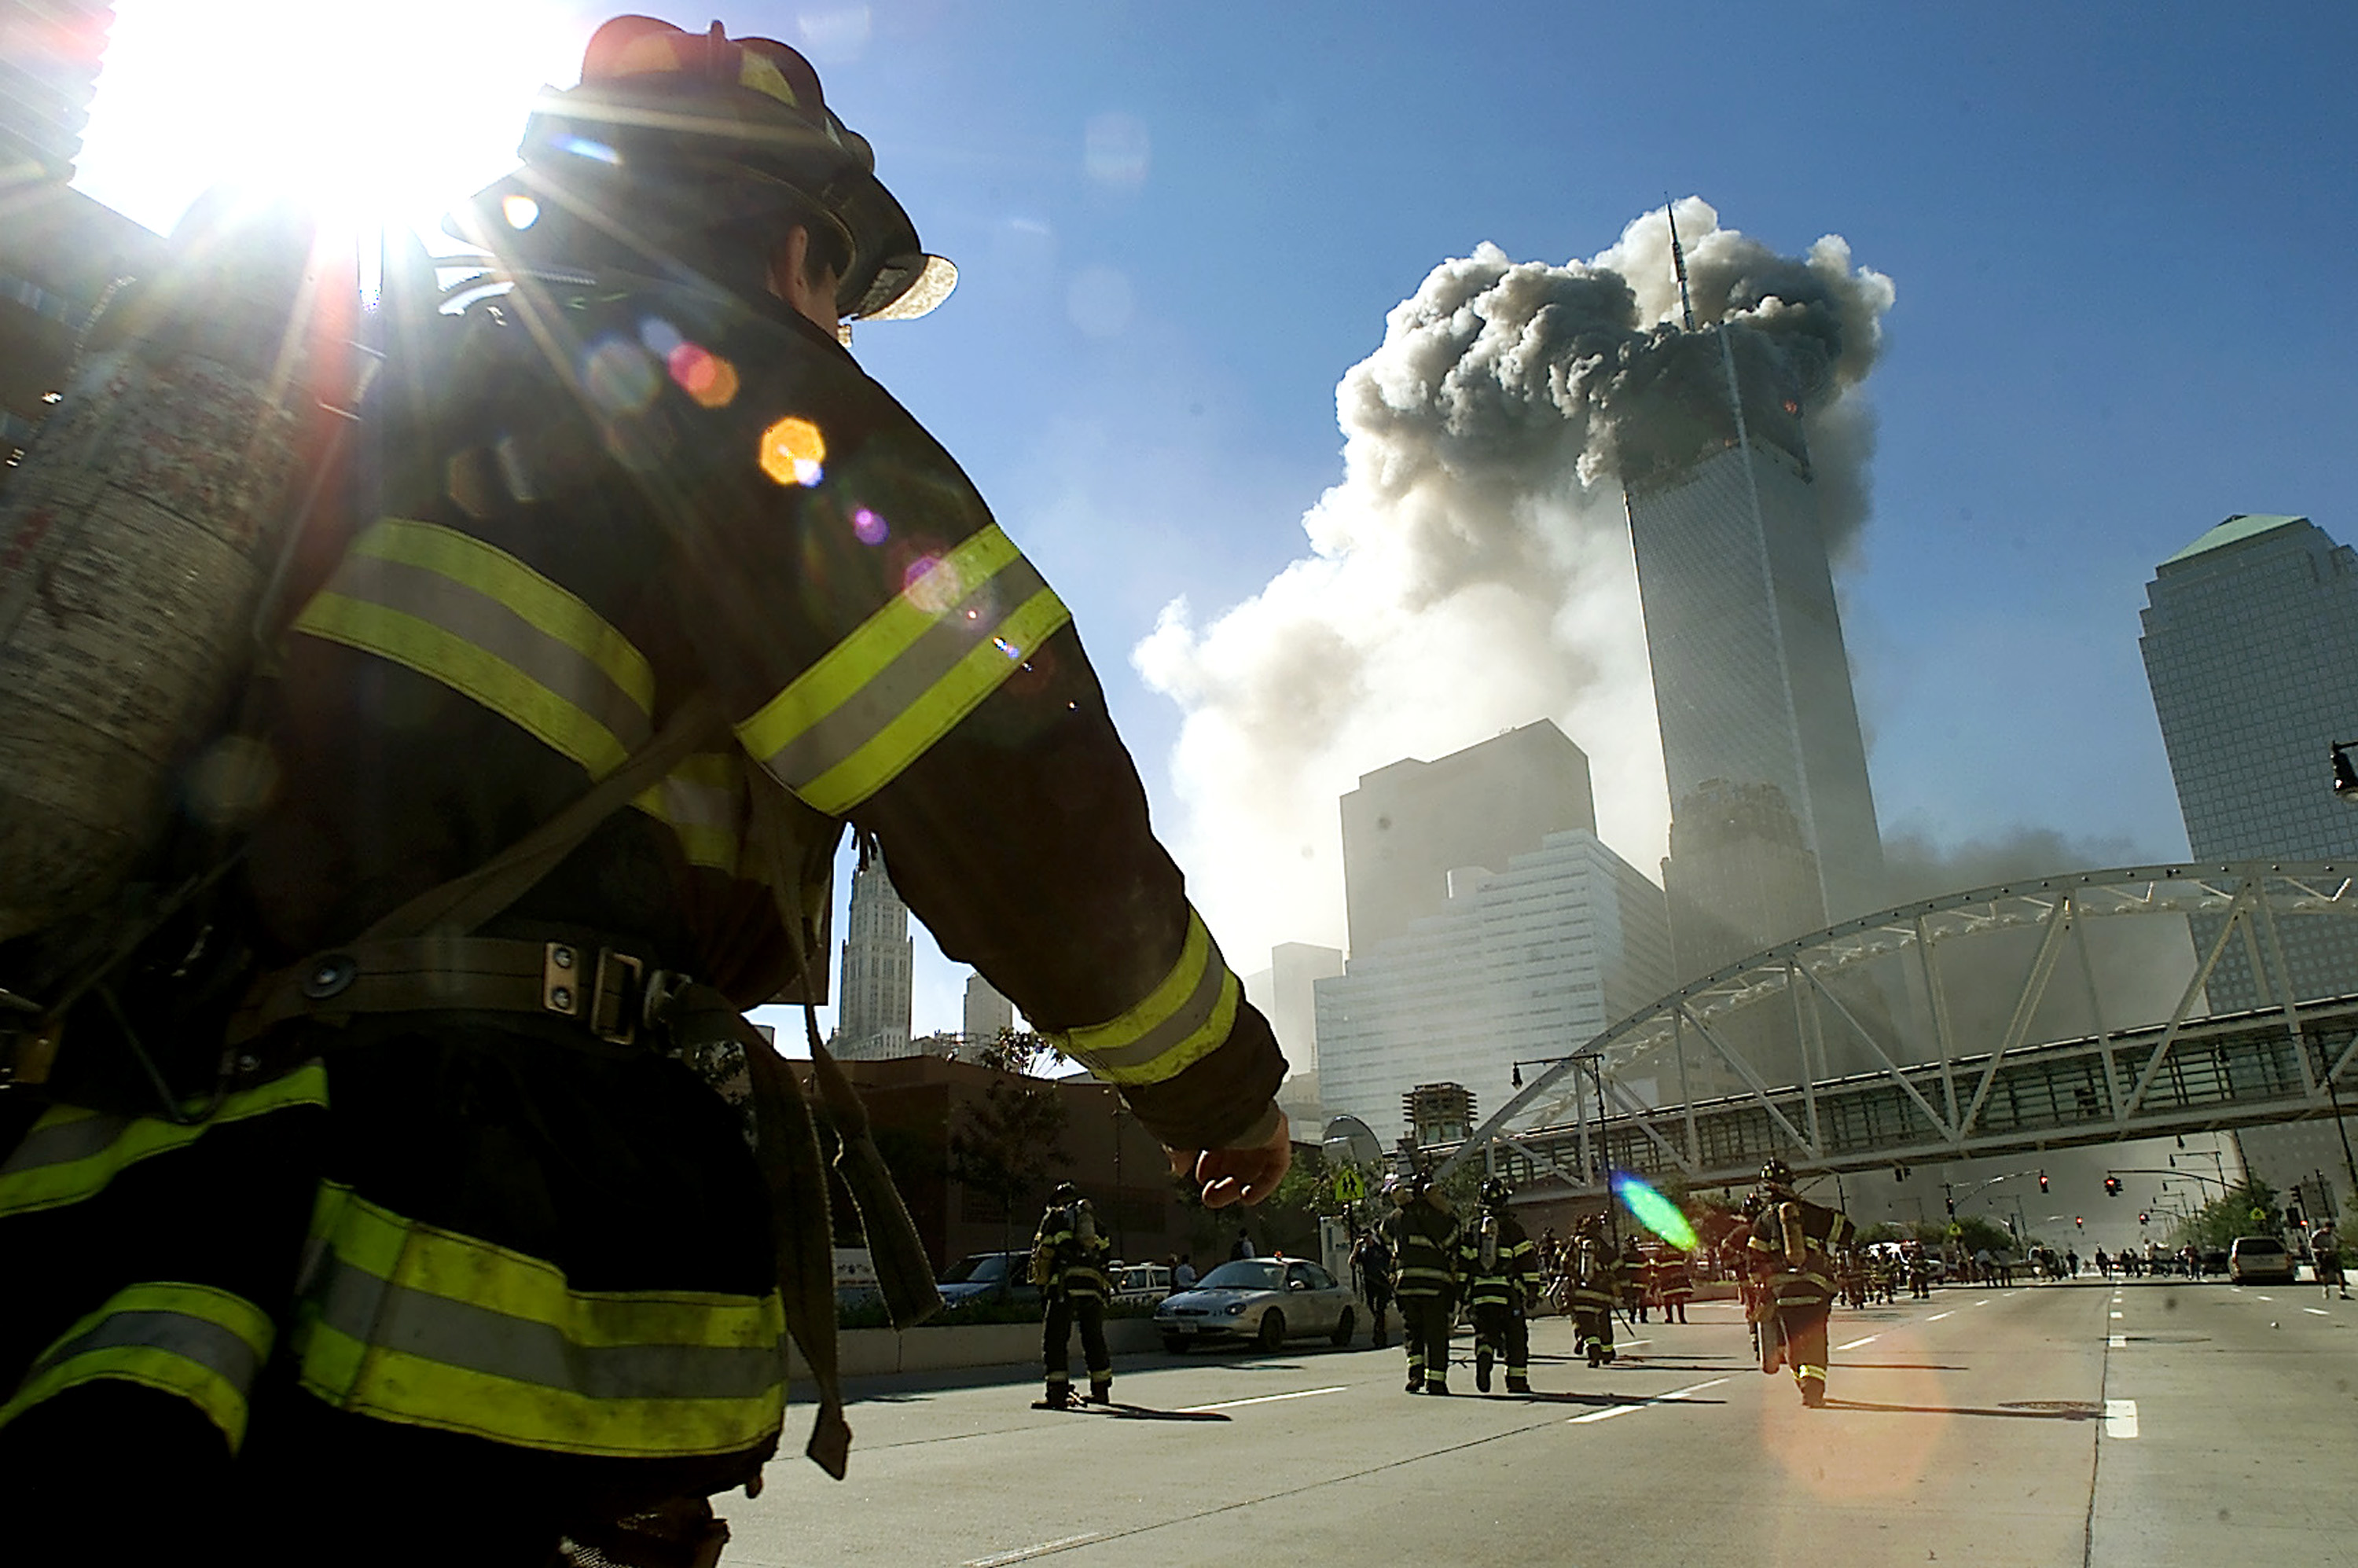 Firefighters walk towards one of the towers at the World Trade Center before it collapsed after a plane hit the building September 11, 2001 in New York City. (Photo by Jose Jimenez/Primera Hora/Getty Images)